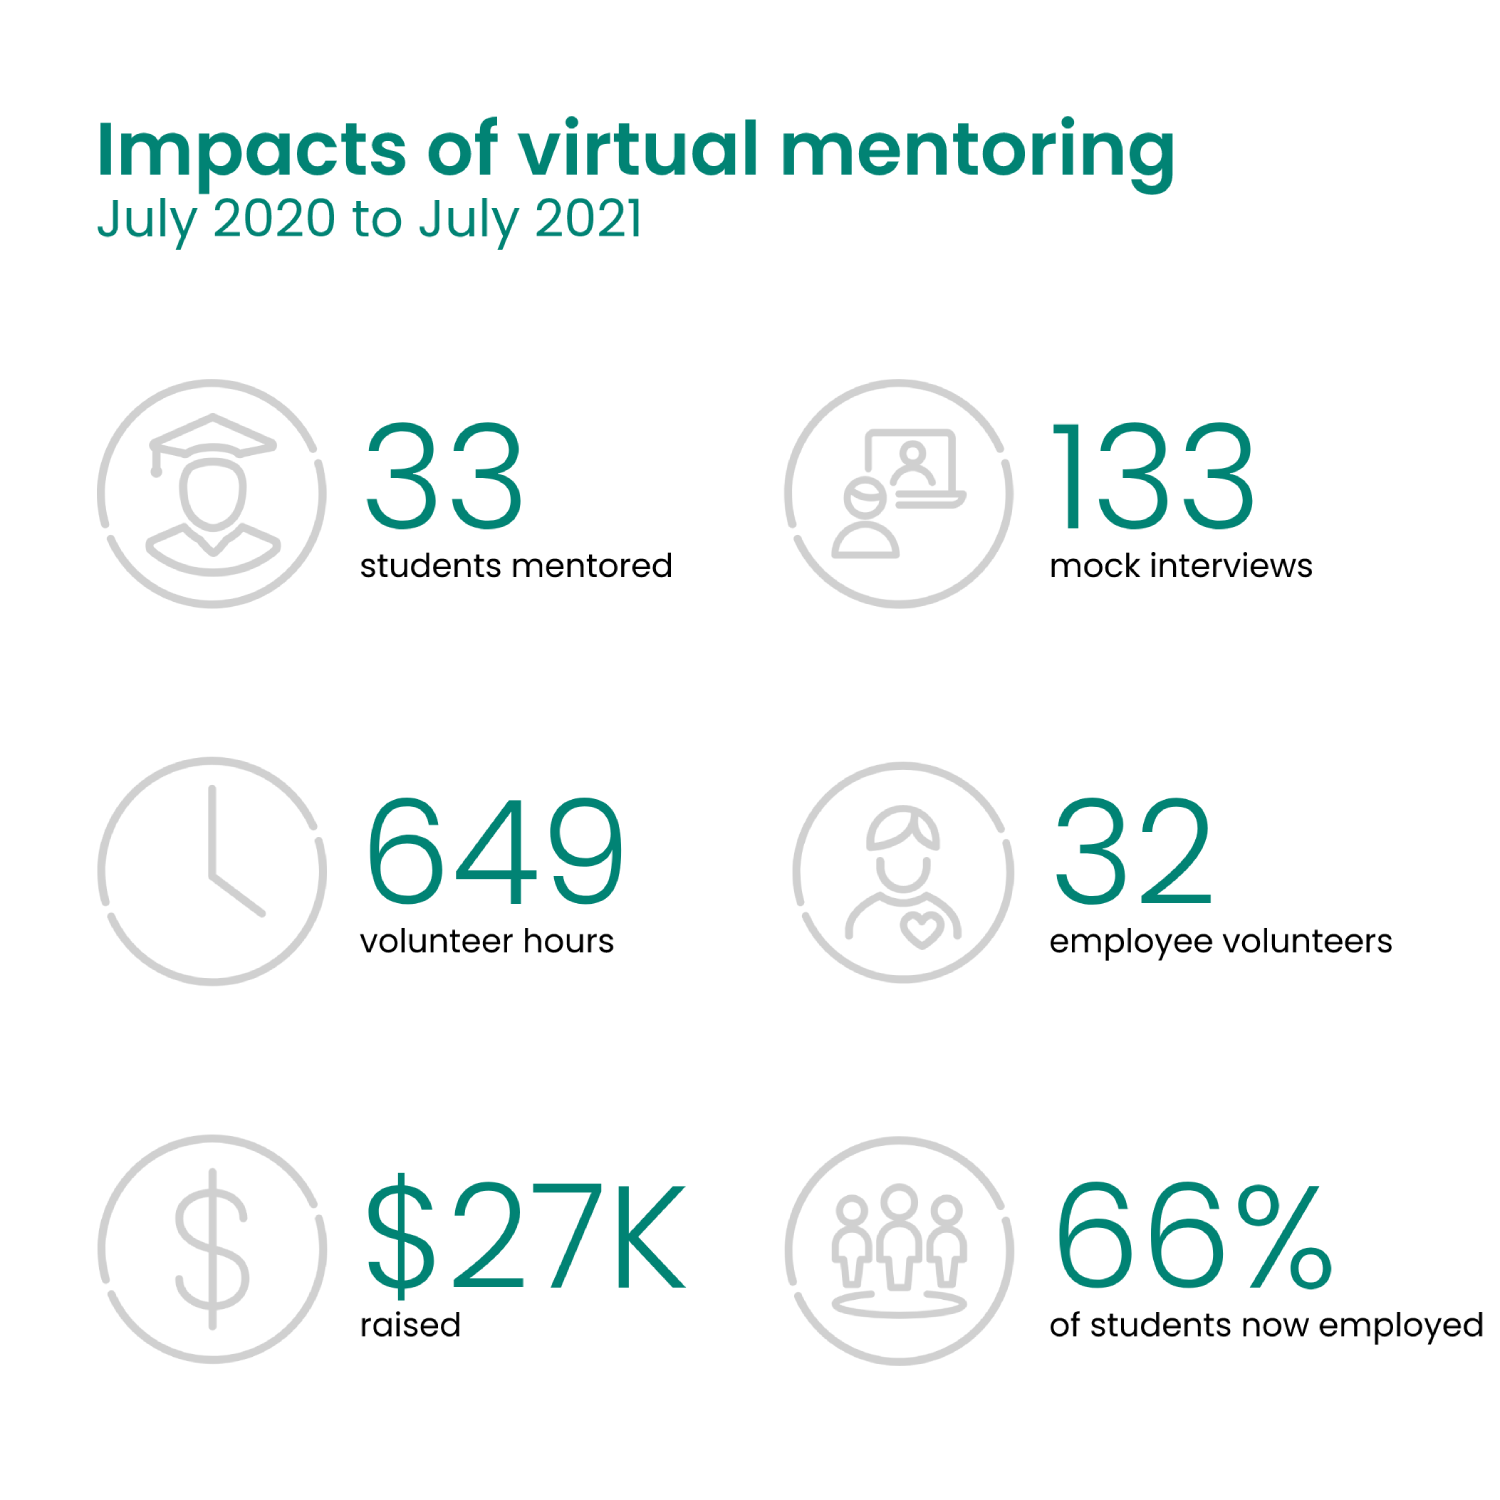 Infographic showing impacts of a virtual mentoring program